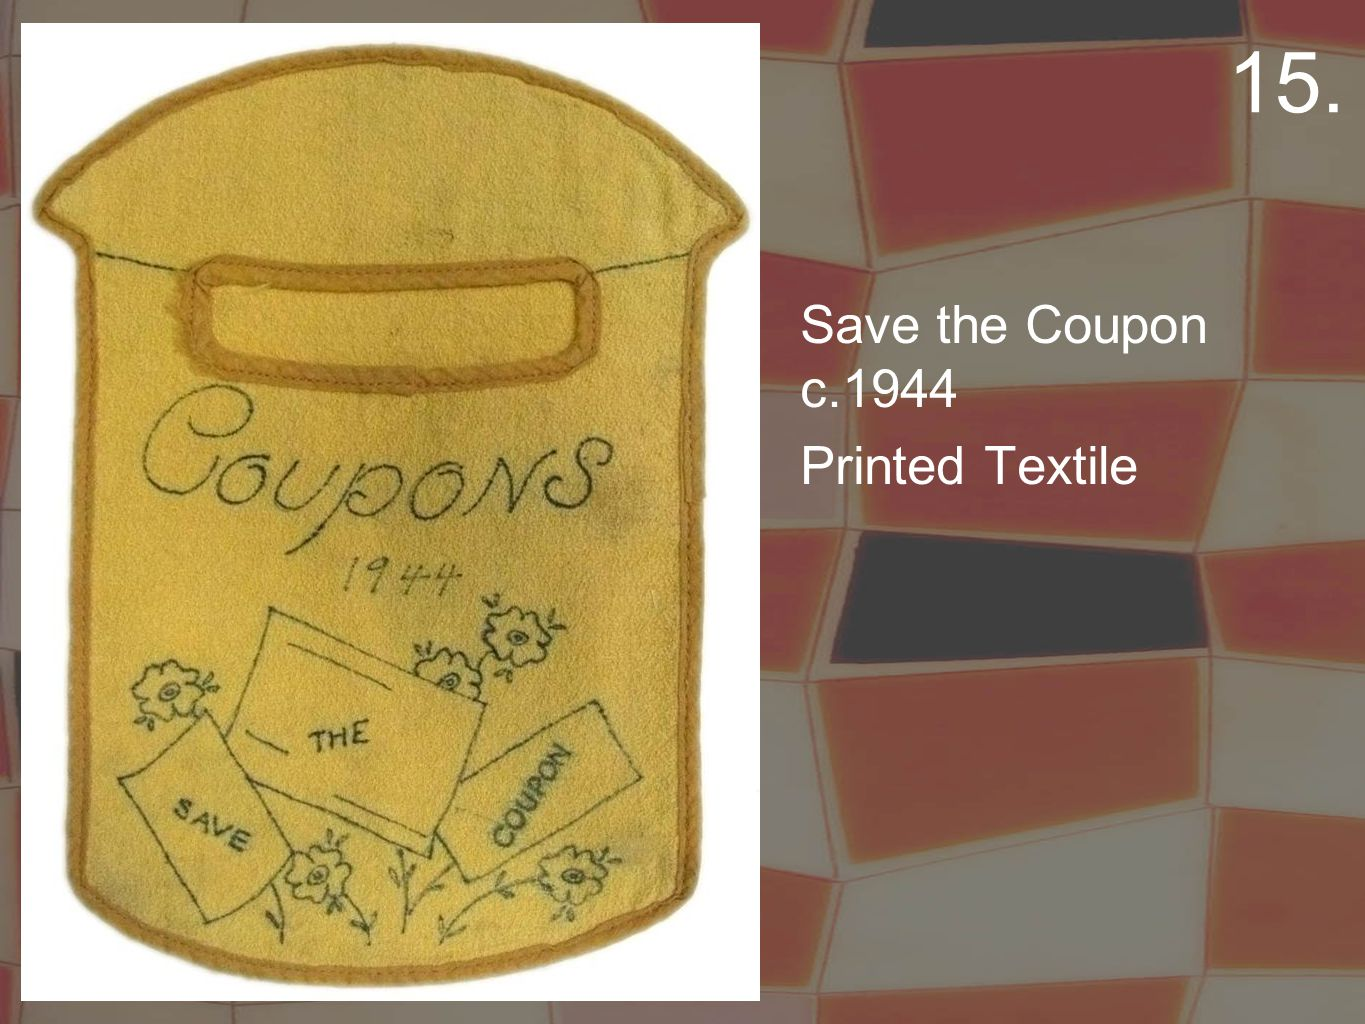 Save the Coupon c.1944 Printed Textile 15.